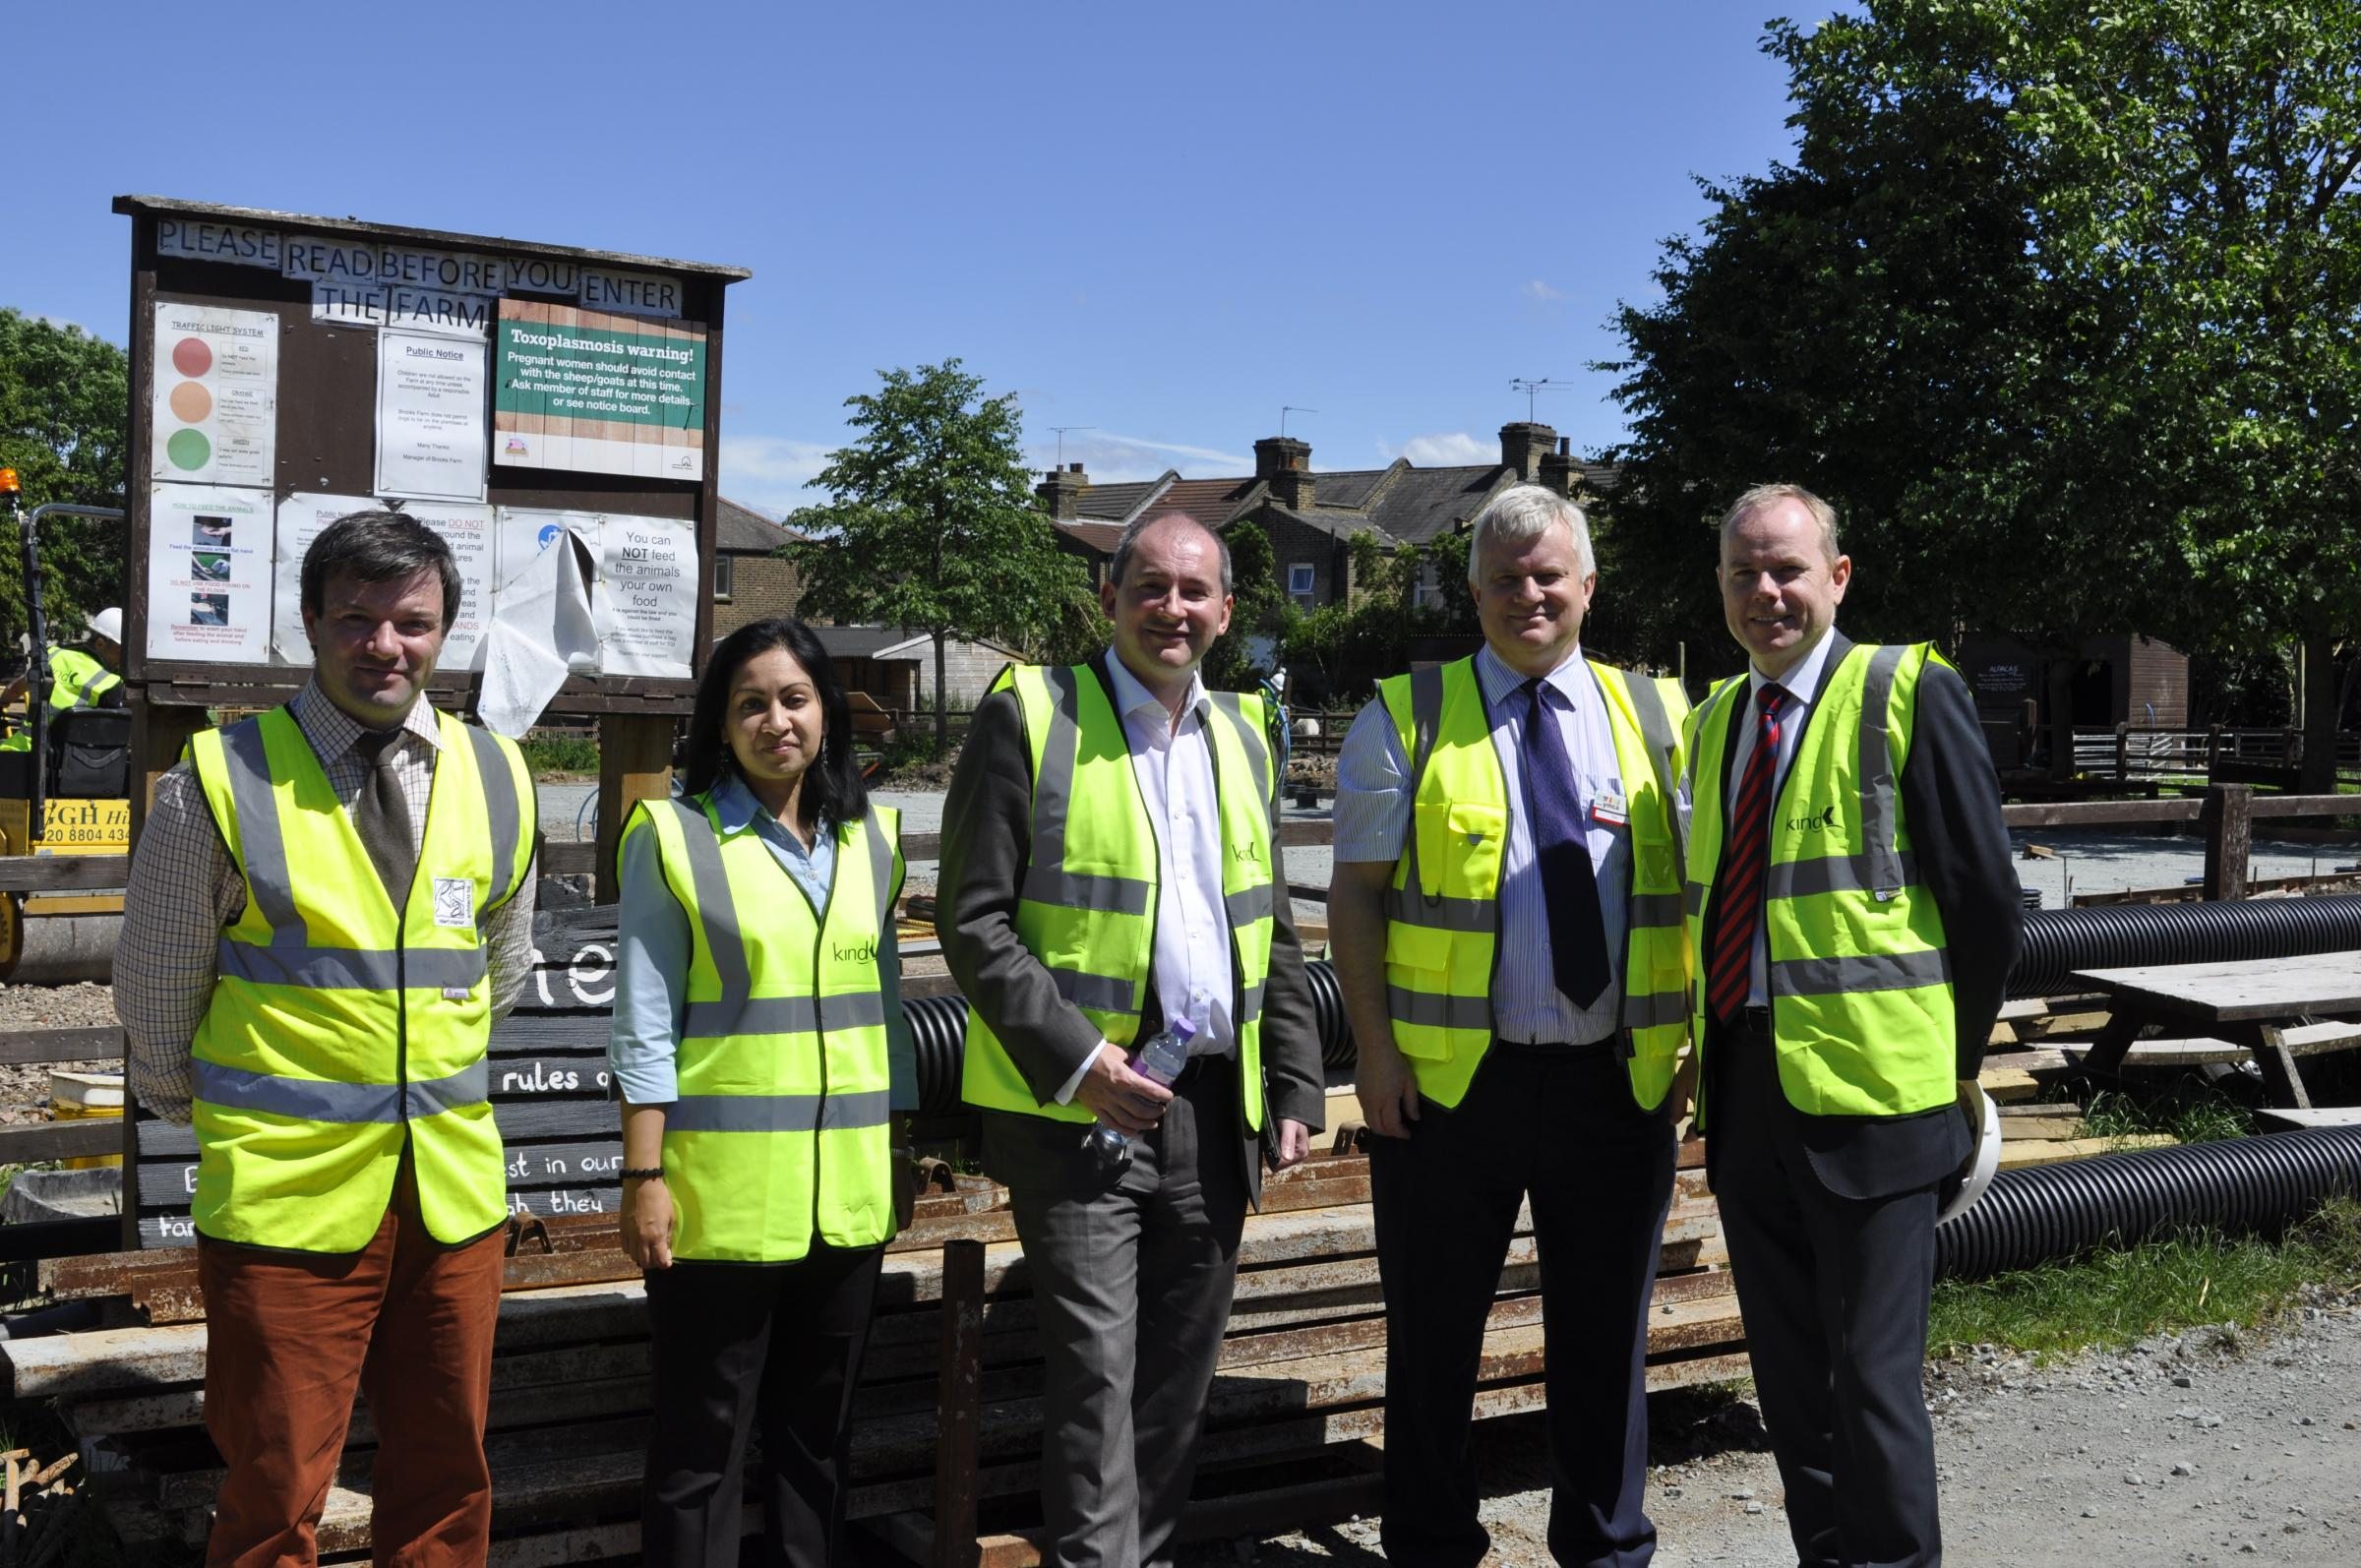 From left, Richard Painter, Councillor Saima Mahmud, Minister Stephen Williams, Timothy Pain and Tony Battle.